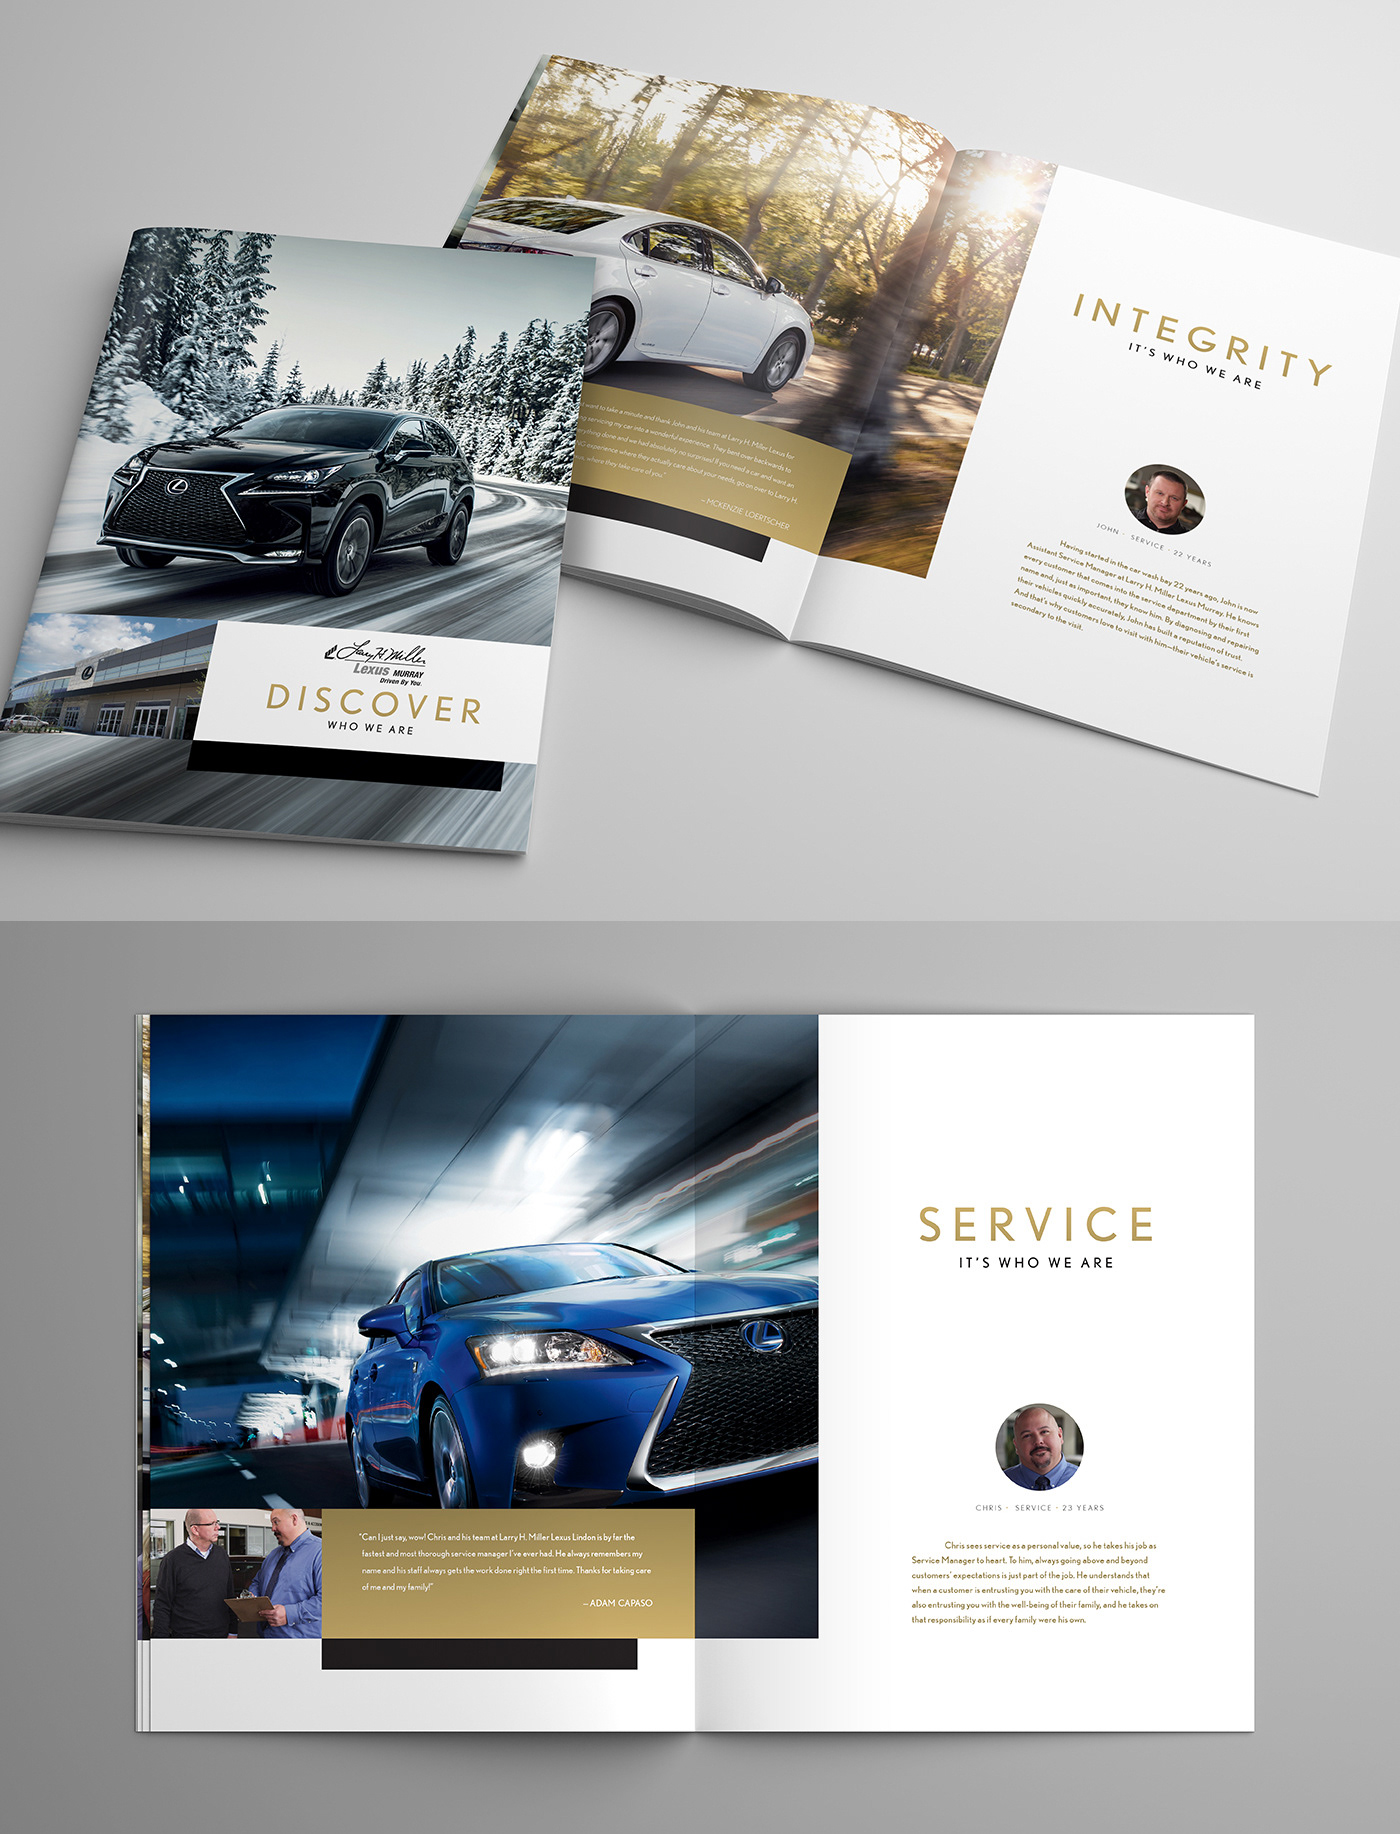 Who We Are: Larry H. Miller Lexus On Behance